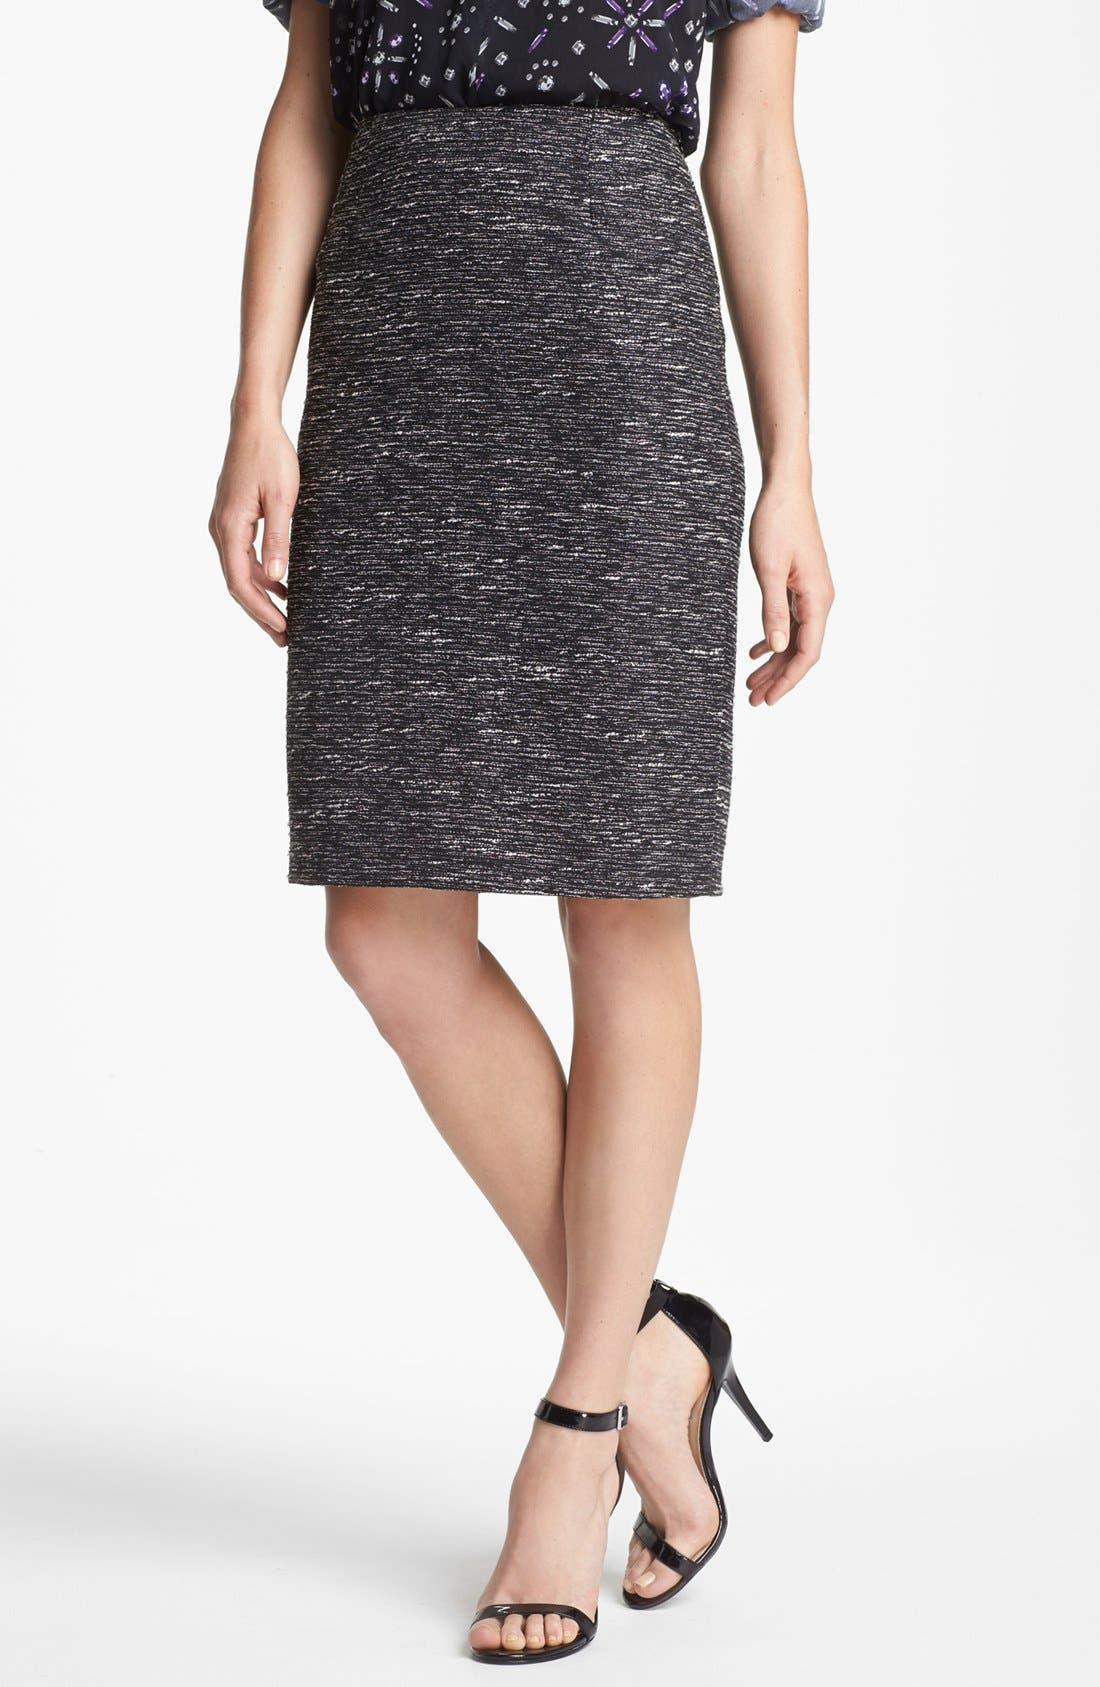 Alternate Image 1 Selected - Vince Camuto Metallic Tweed Pencil Skirt